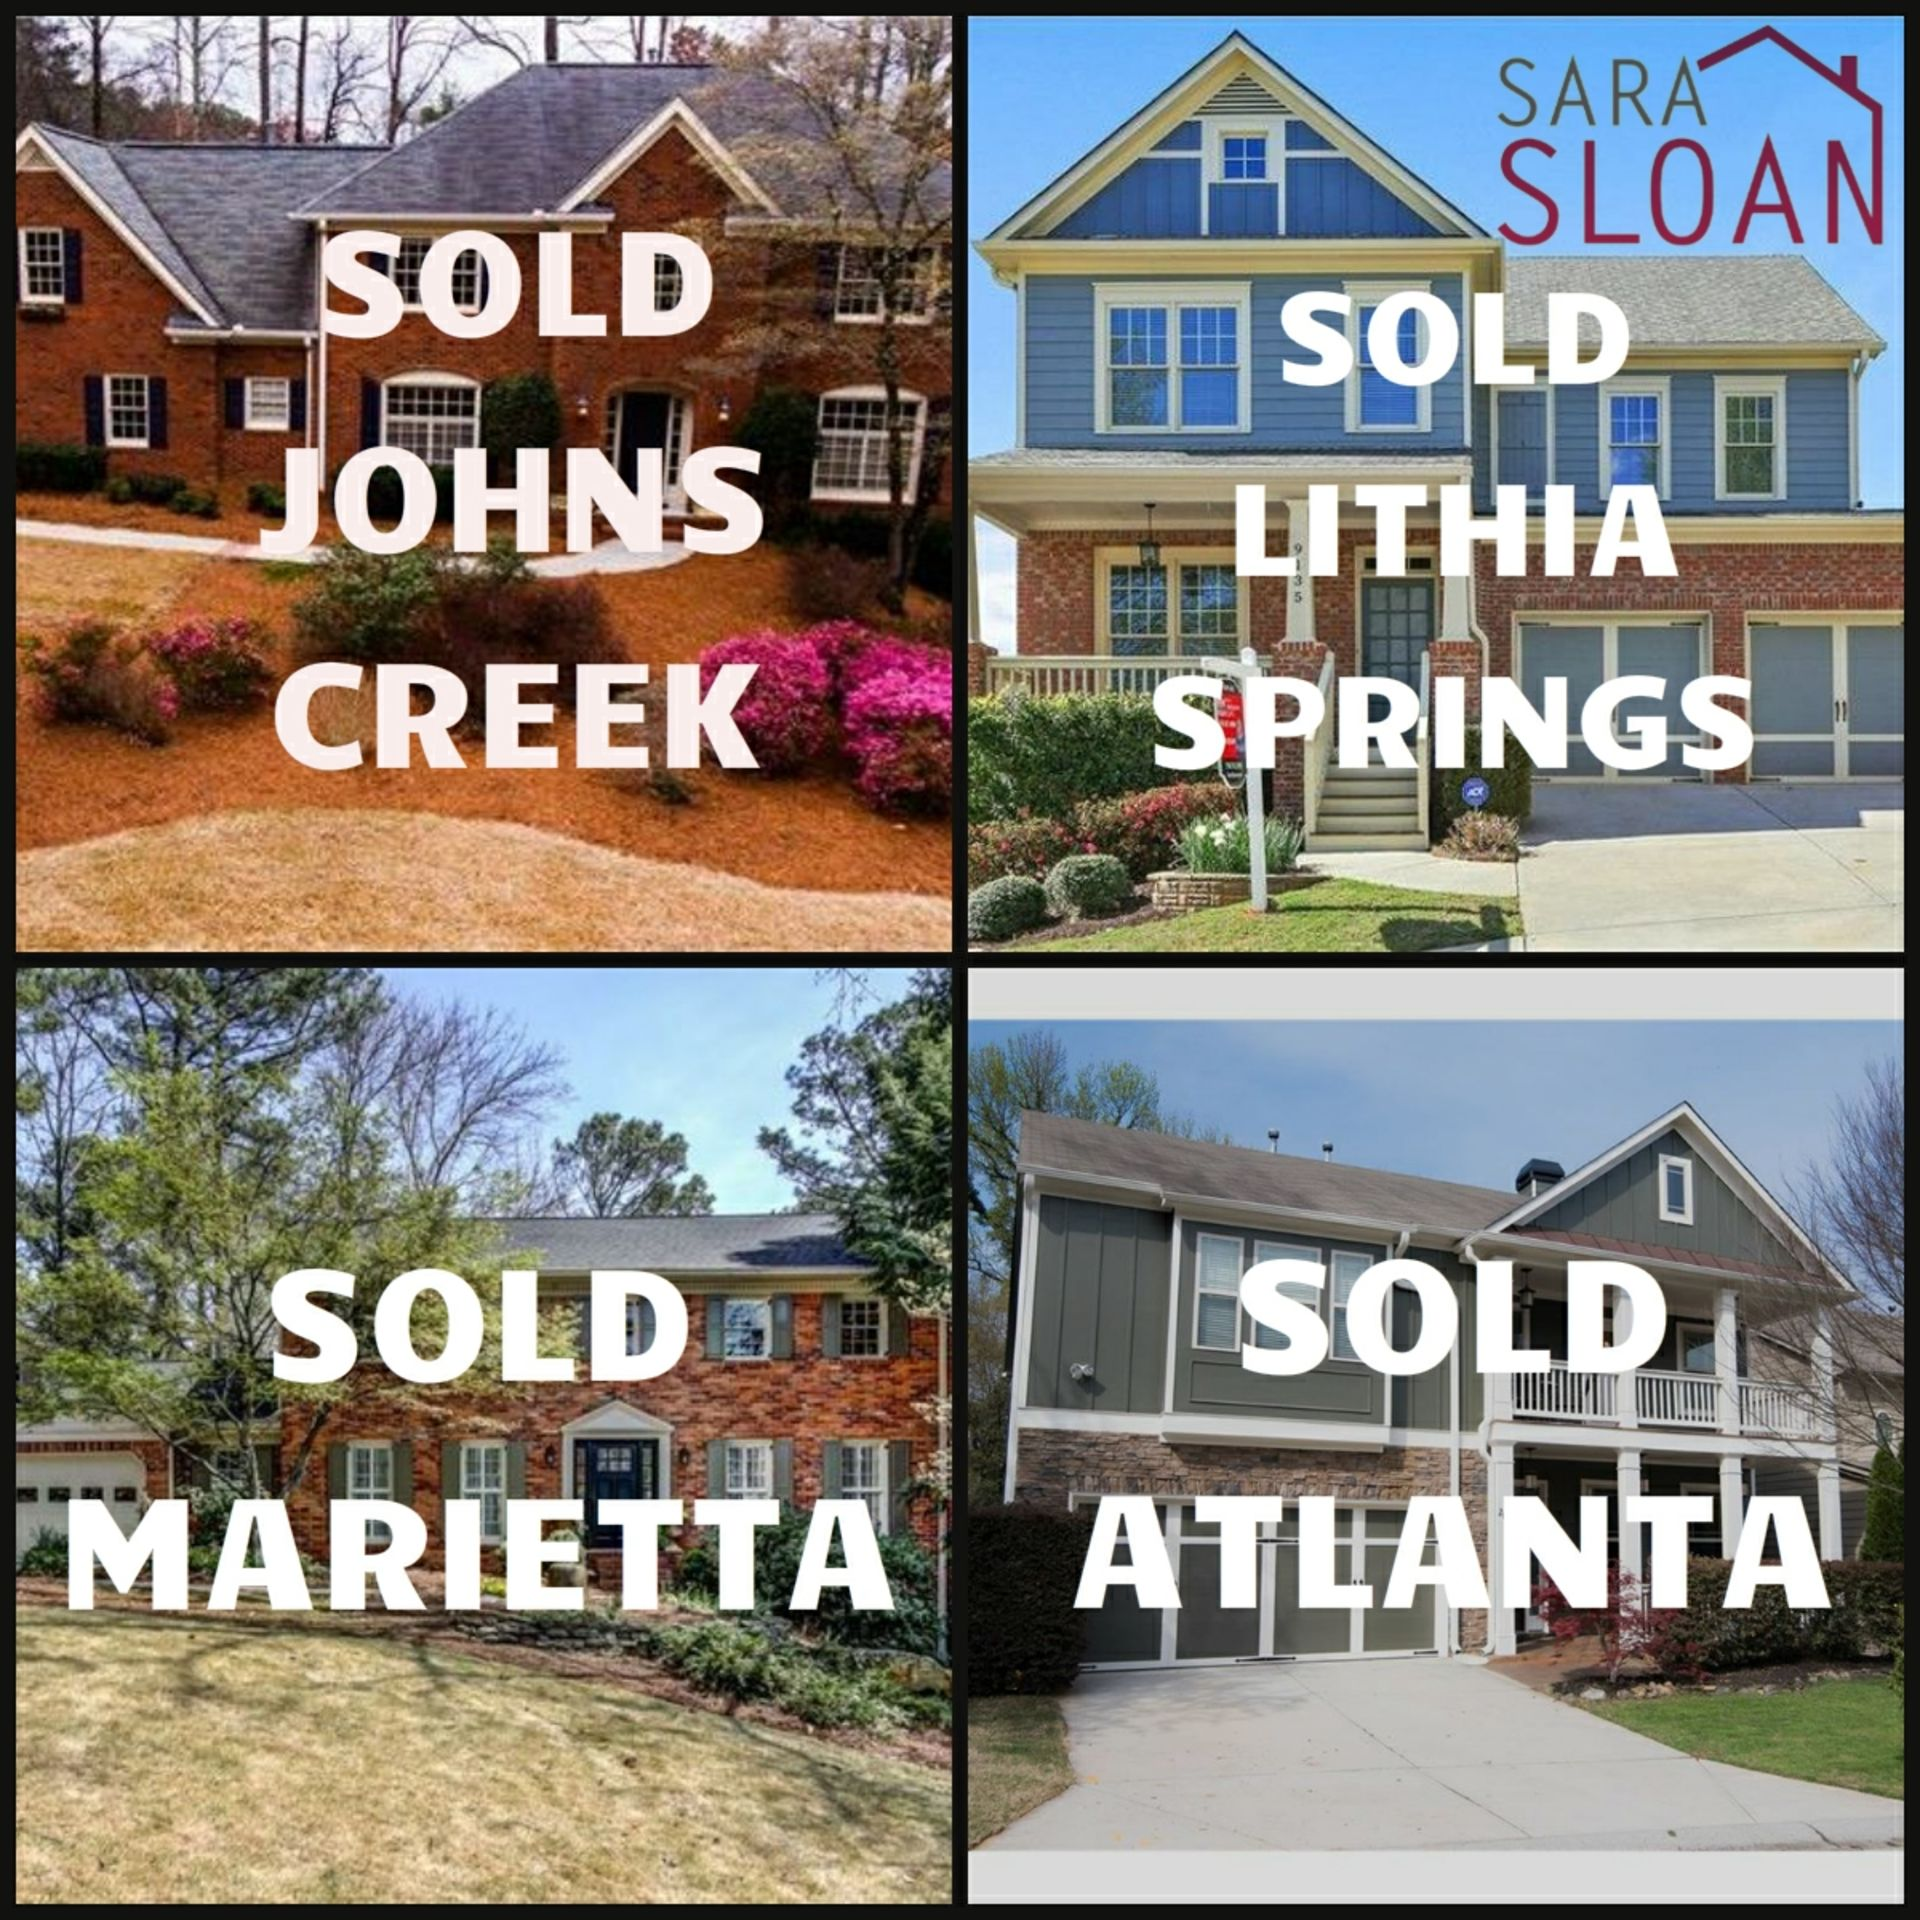 #soldfast – Marketing gets your home SOLD